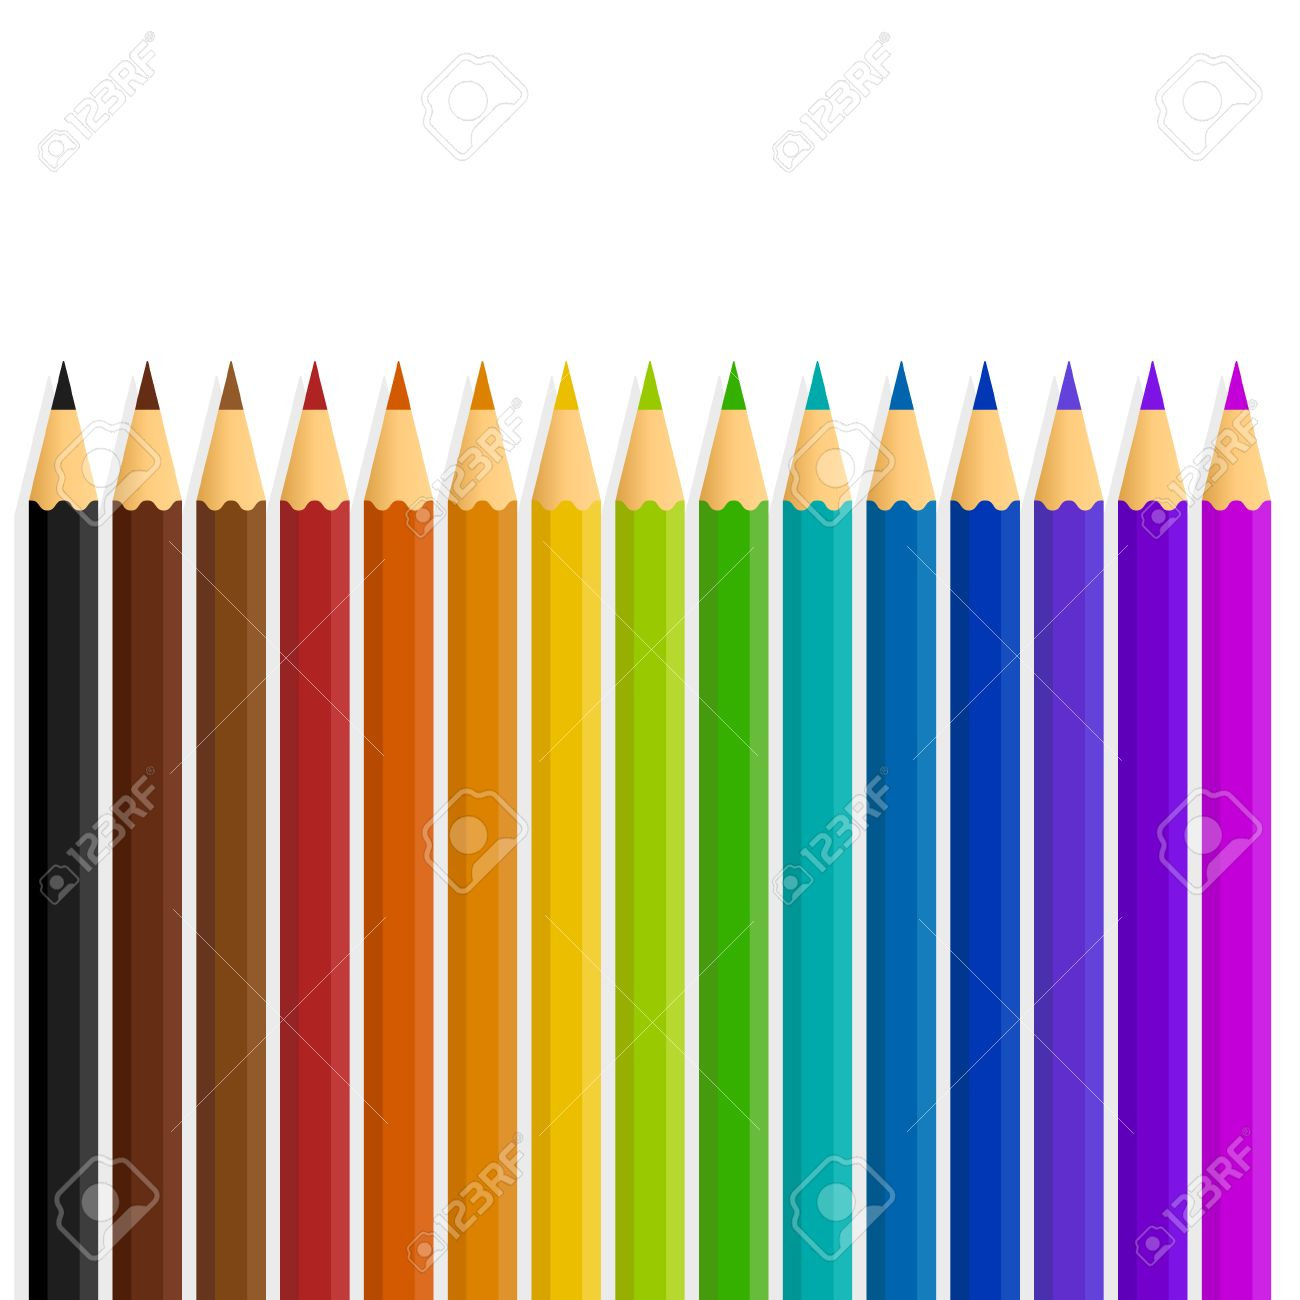 Rainbow colors in order pictures - A Straight Line Of Vector Rainbow Color Colour Pencils Isolated On A White Background Stock Vector